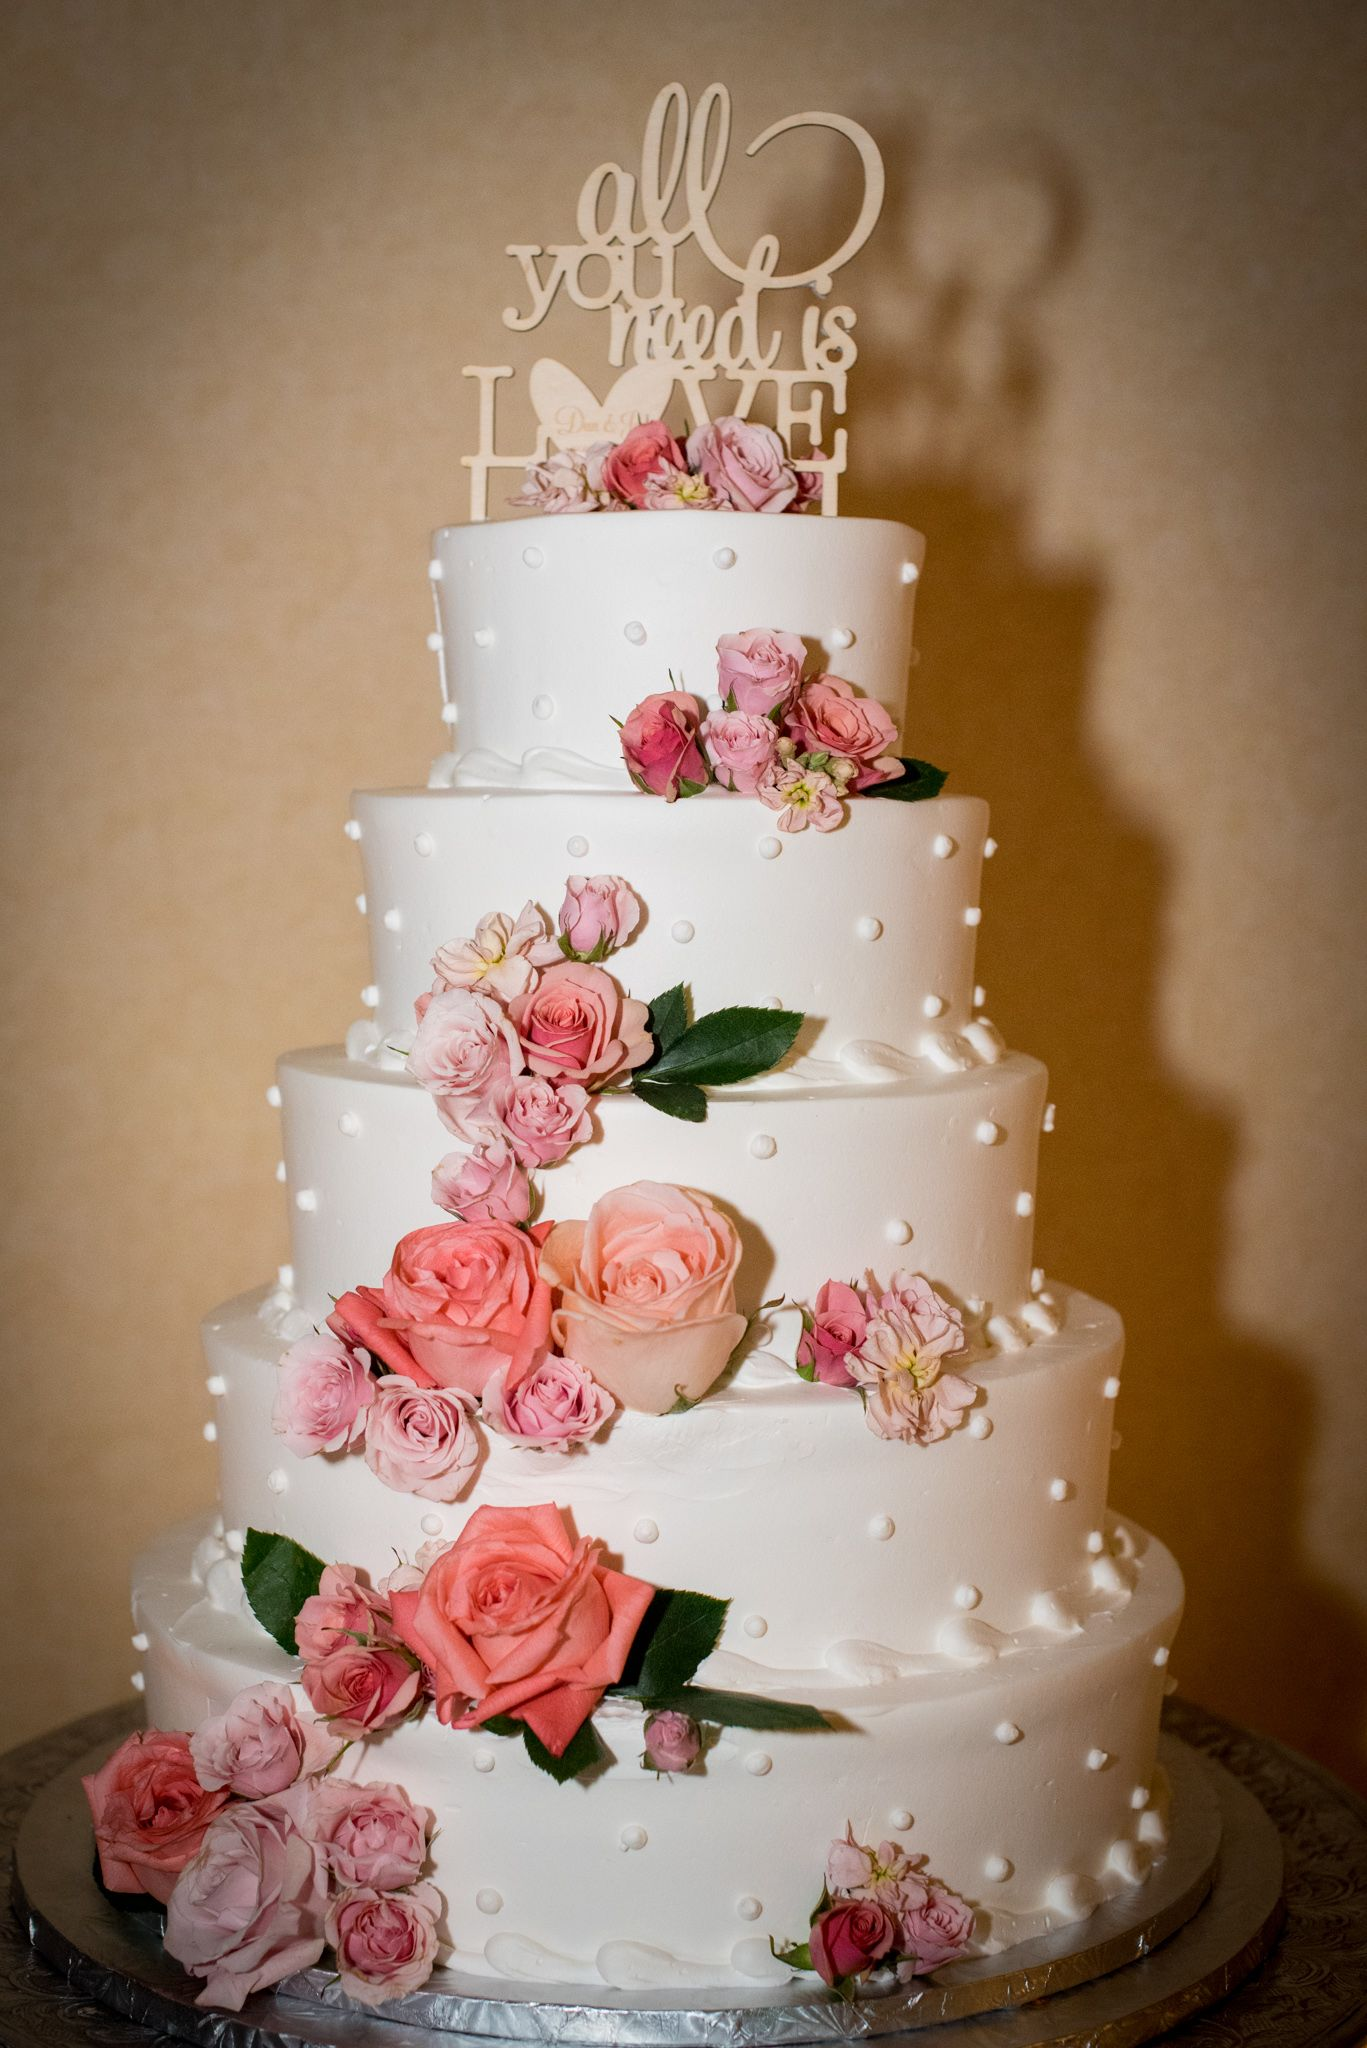 All You Need Is Love 5 Layer White Weddingcake With Gorgeous Pink